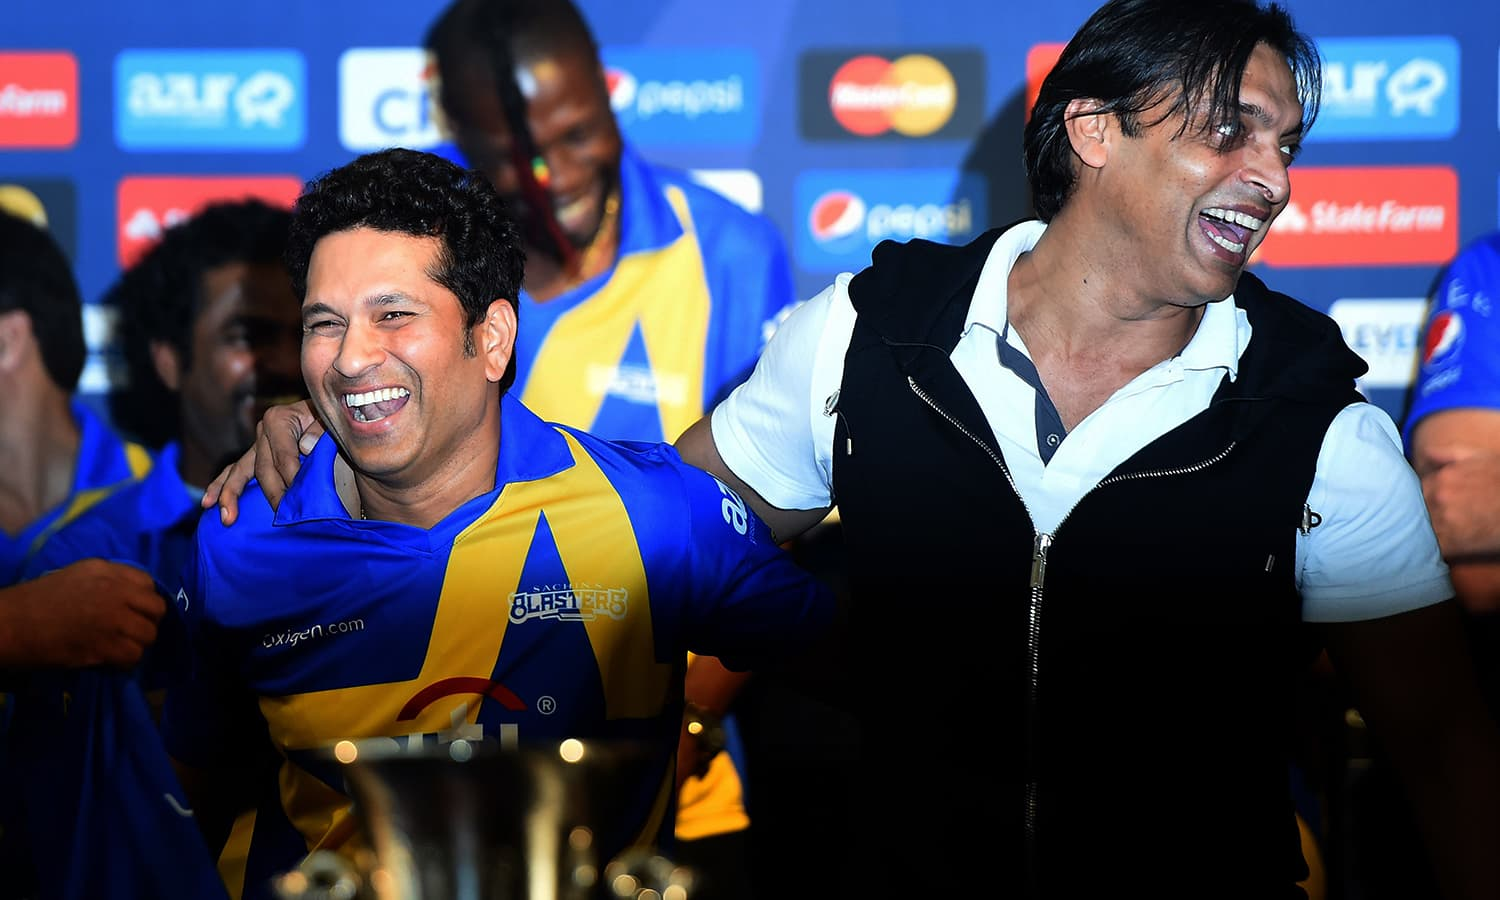 """Retired Indian cricketer Sachin Tendulkar (L) laughs with Pakistan's Shoaib Akhtar during a press conference in New York on November 5, 2015. Tendulkar and Warne will lead a lineup of renowned cricket players from around the world in the inaugural """"Cricket All-Stars,"""" a three-game series to be played in Major League Baseball stadiums in New York , Houston and Los Angeles, to promote cricket the US. AFP PHOTO/JEWEL SAMAD"""